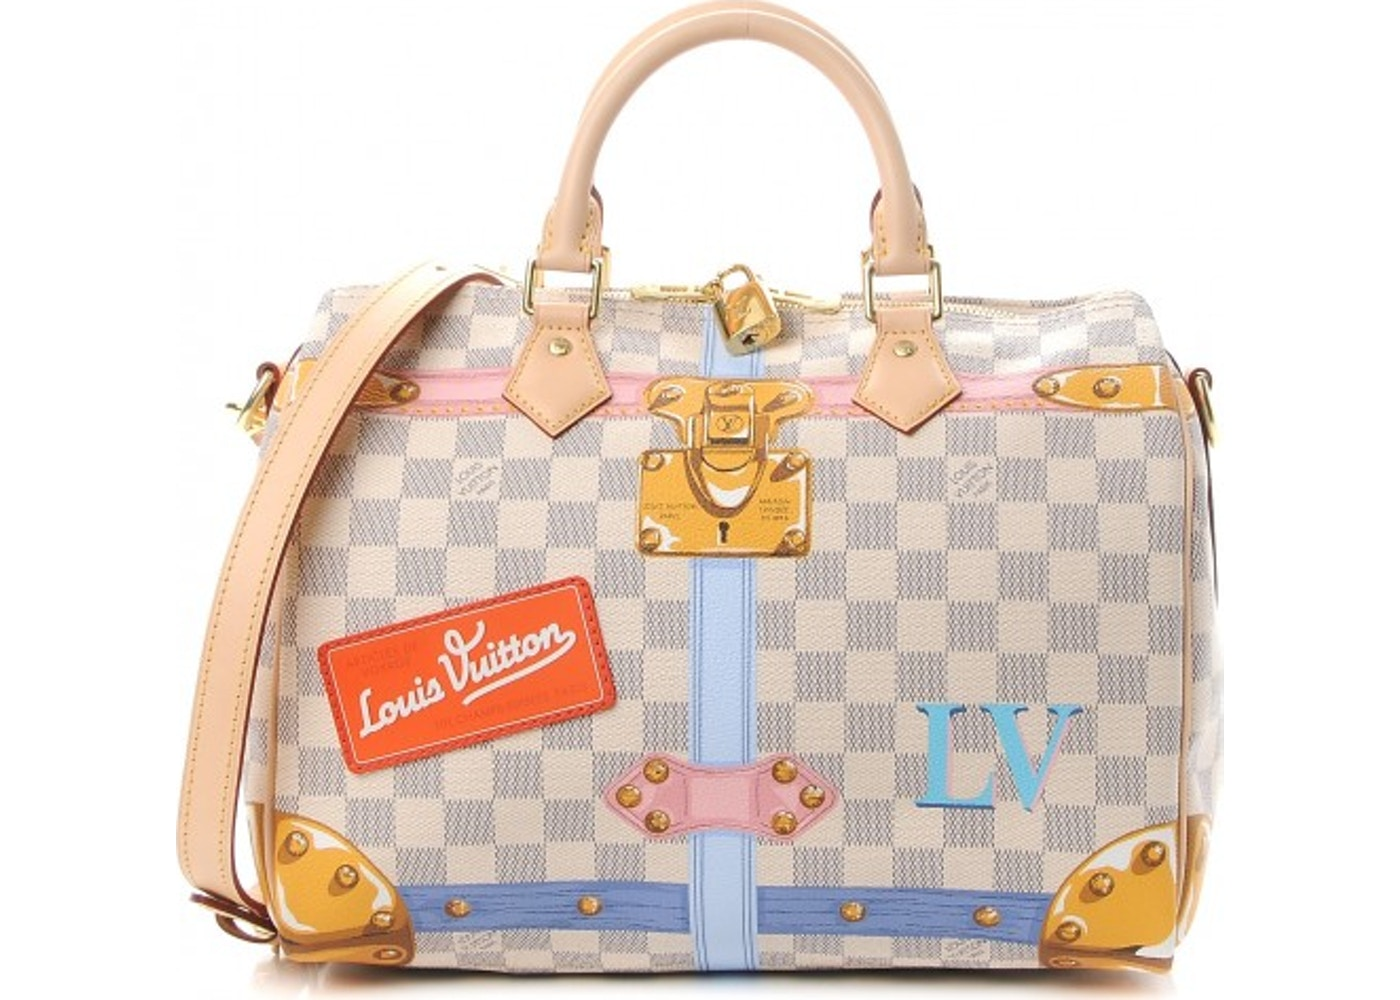 3080dc0616a3 Louis Vuitton Speedy Bandouliere Damier Azur Summer Trunk ...